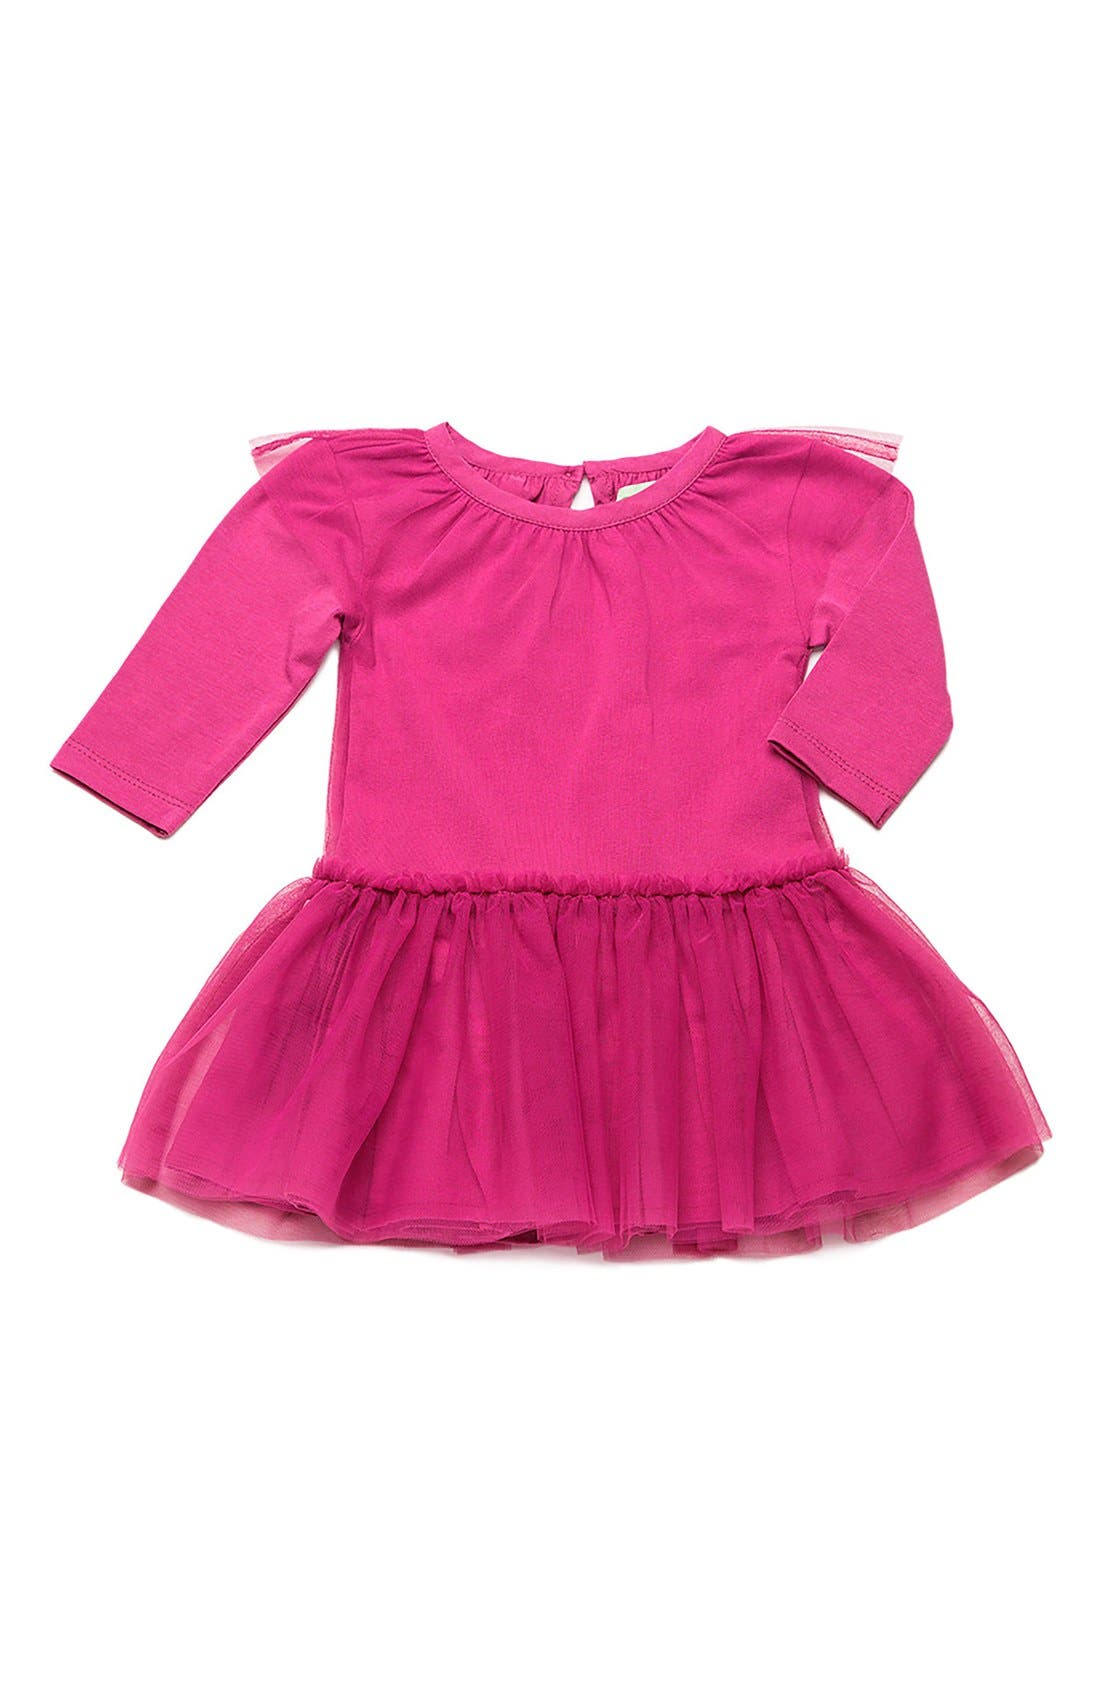 Little Belle Tulle Skirt Dress,                         Main,                         color, Fuchsia